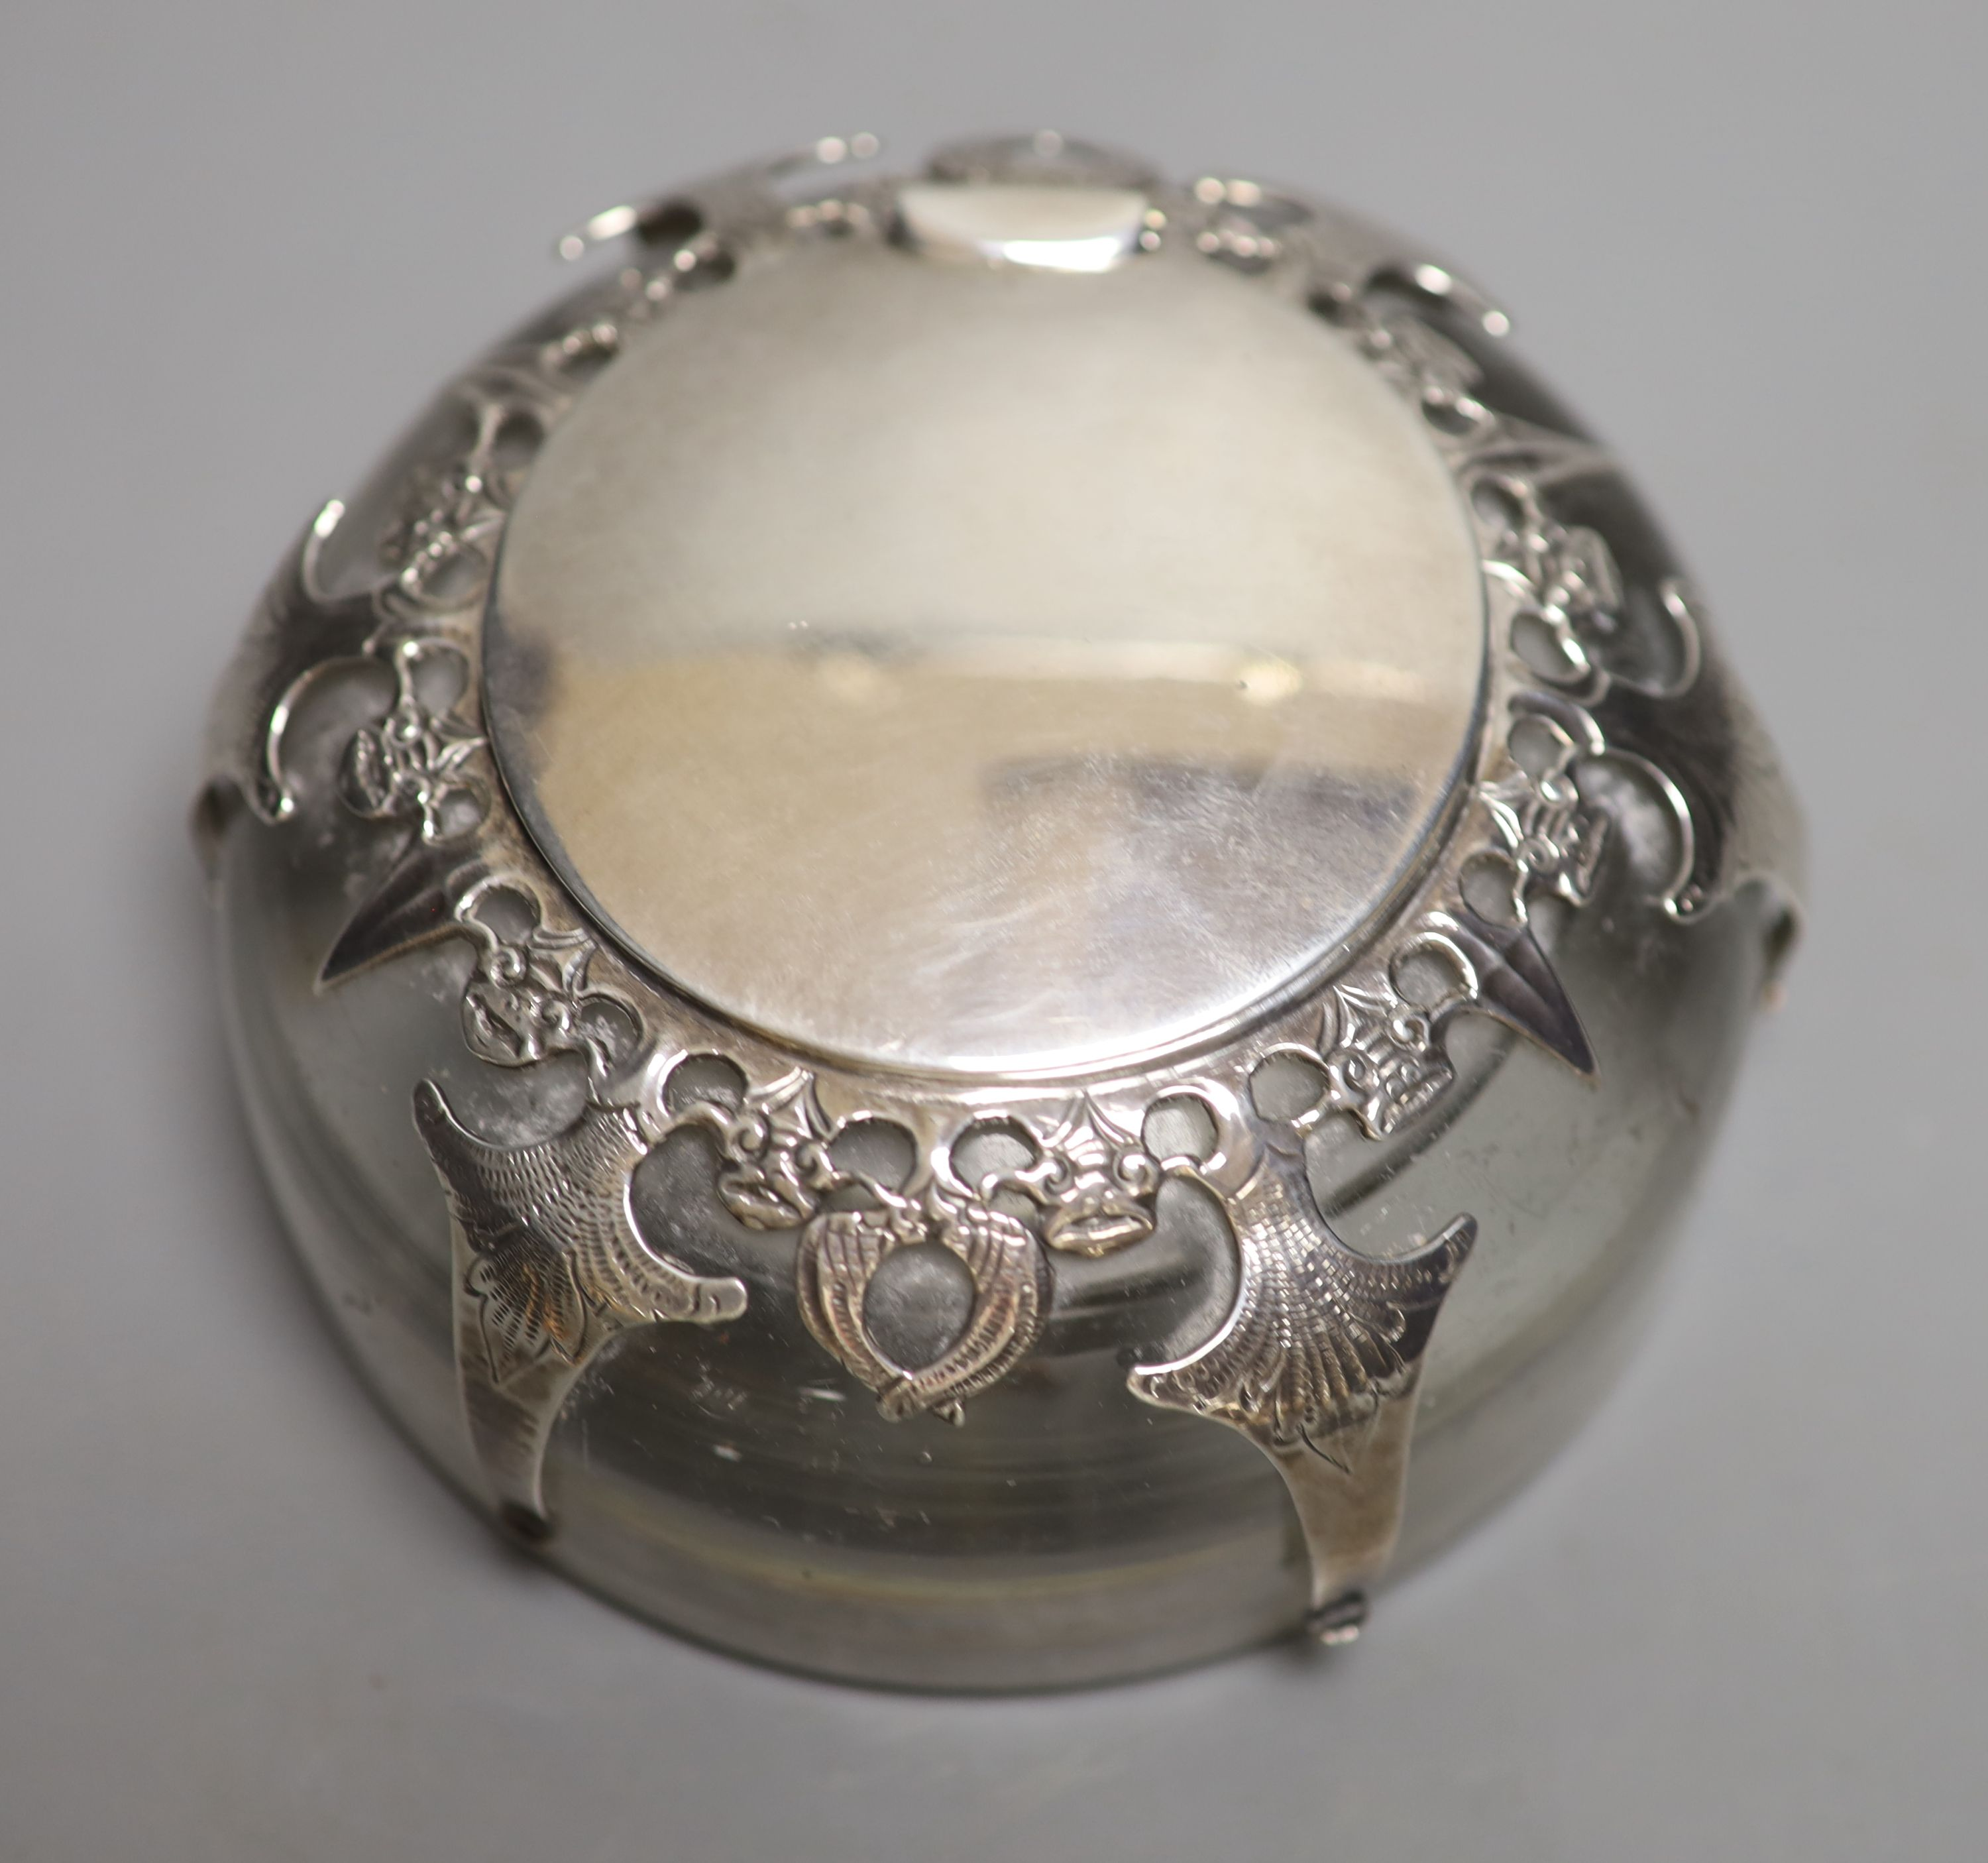 An Edwardian silver mounted domed glass inkwell, London, 1901, base diameter 12.3cm. - Image 2 of 4